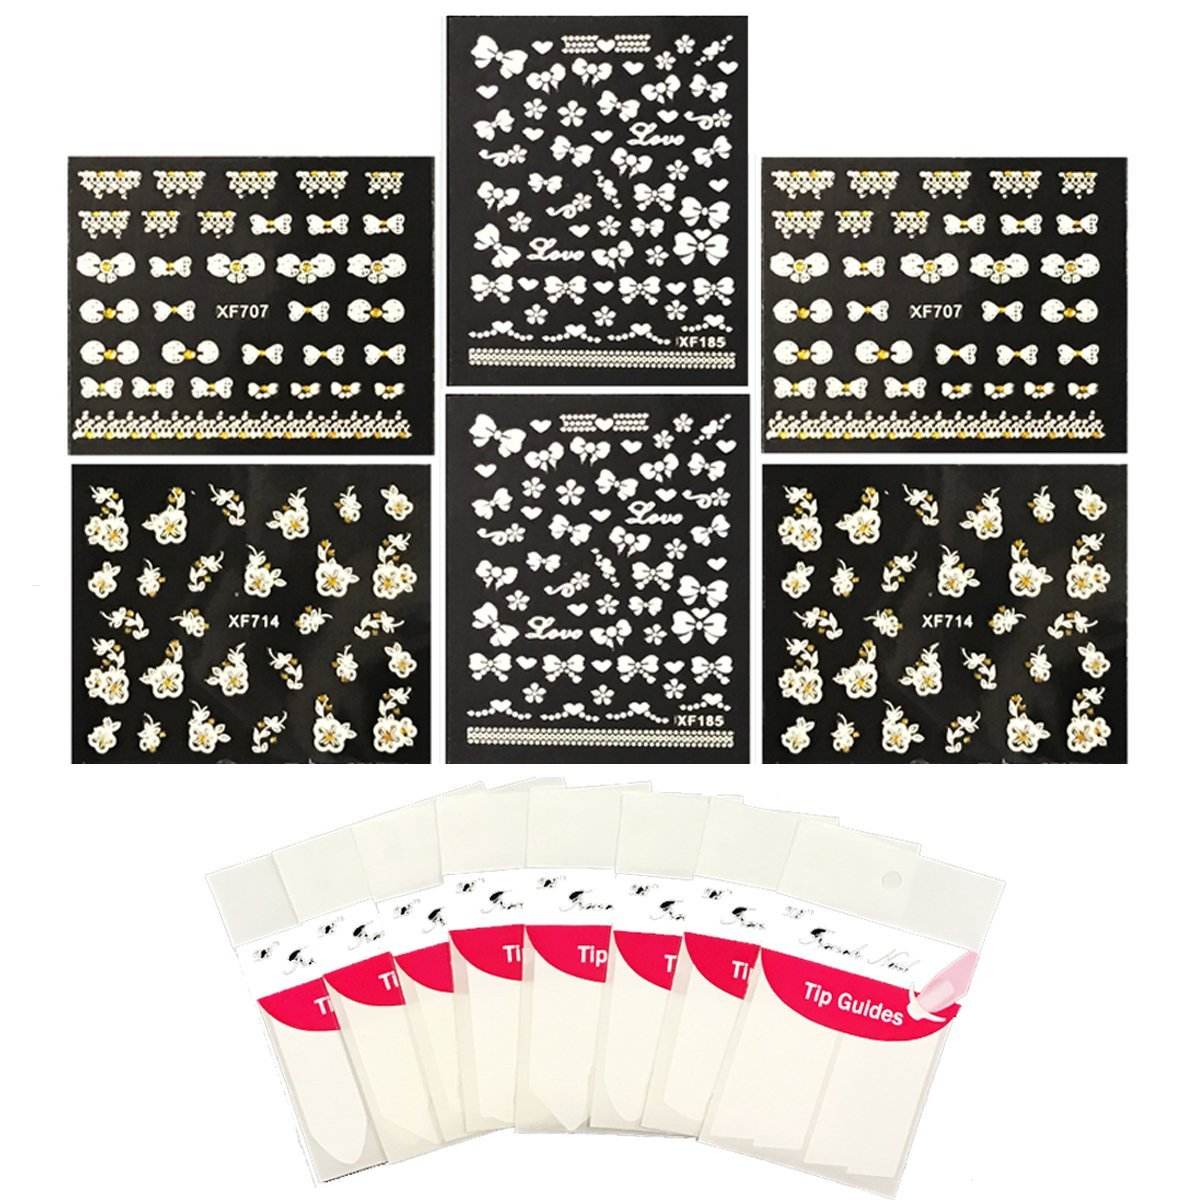 Wrapables® Nail Art Kit - Flowers & Bows Nail Art Stickers Nail Decals & Nail Art Stencils Nail Guides